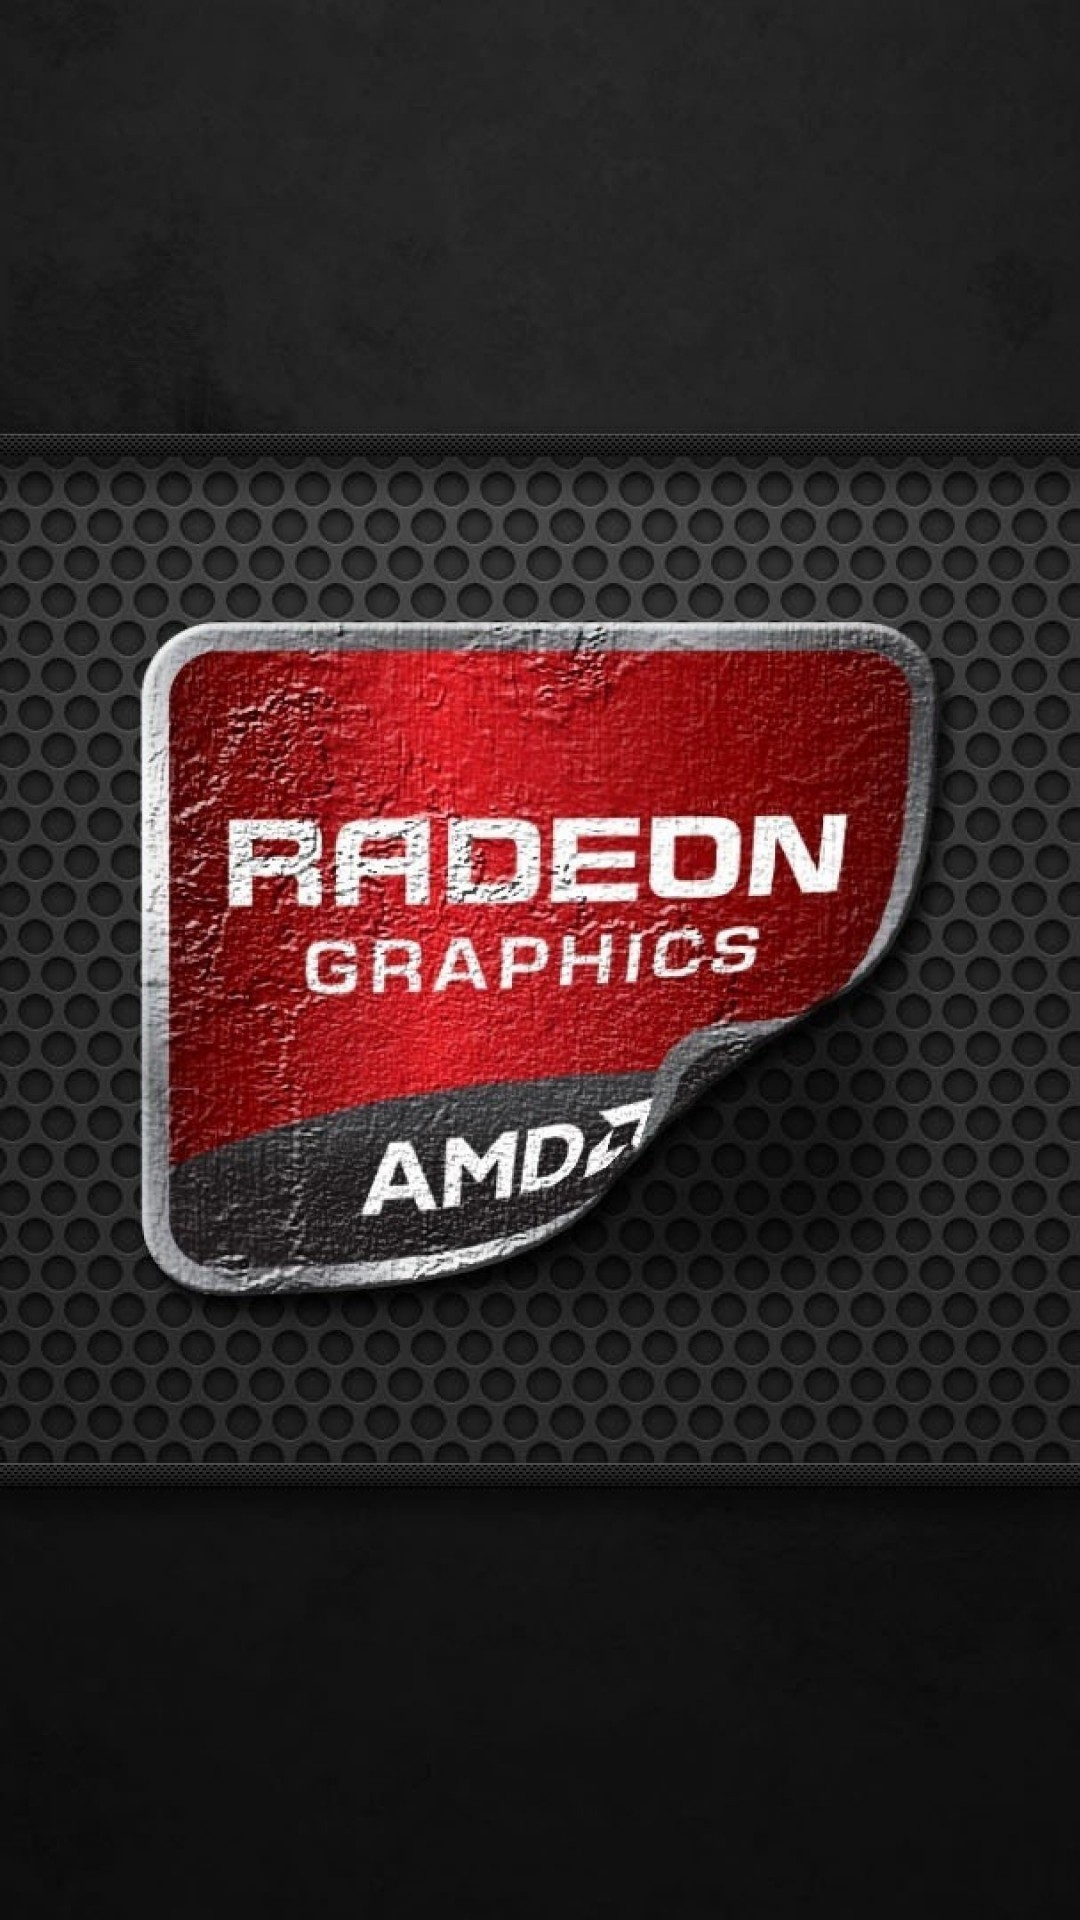 AMD Radeon Graphics Wallpaper for SAMSUNG Galaxy Note 3